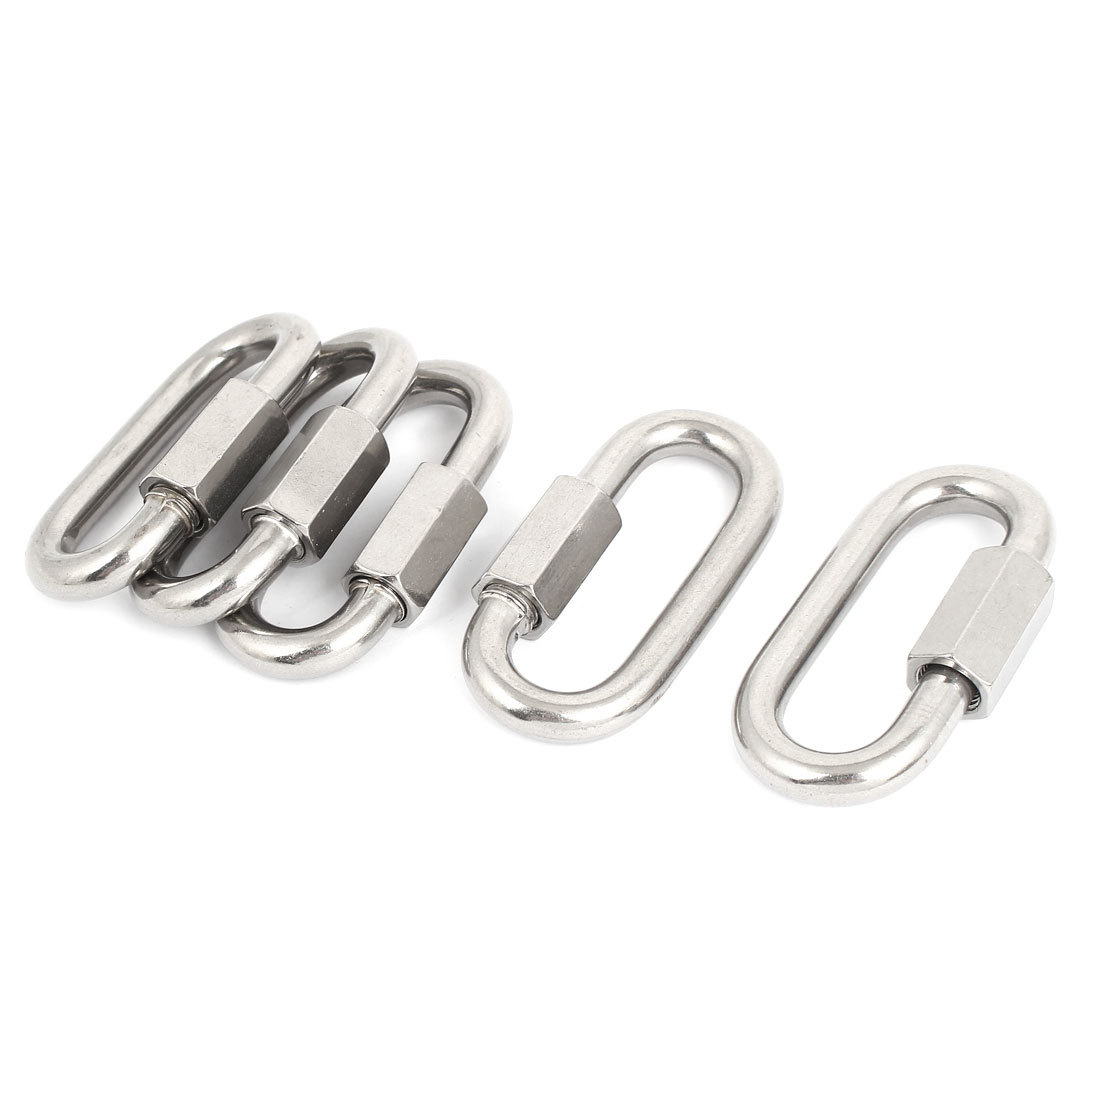 10mm Thickness Stainless Steel Quick Oval Screwlock Link Lock Carabiner 5 Pcs